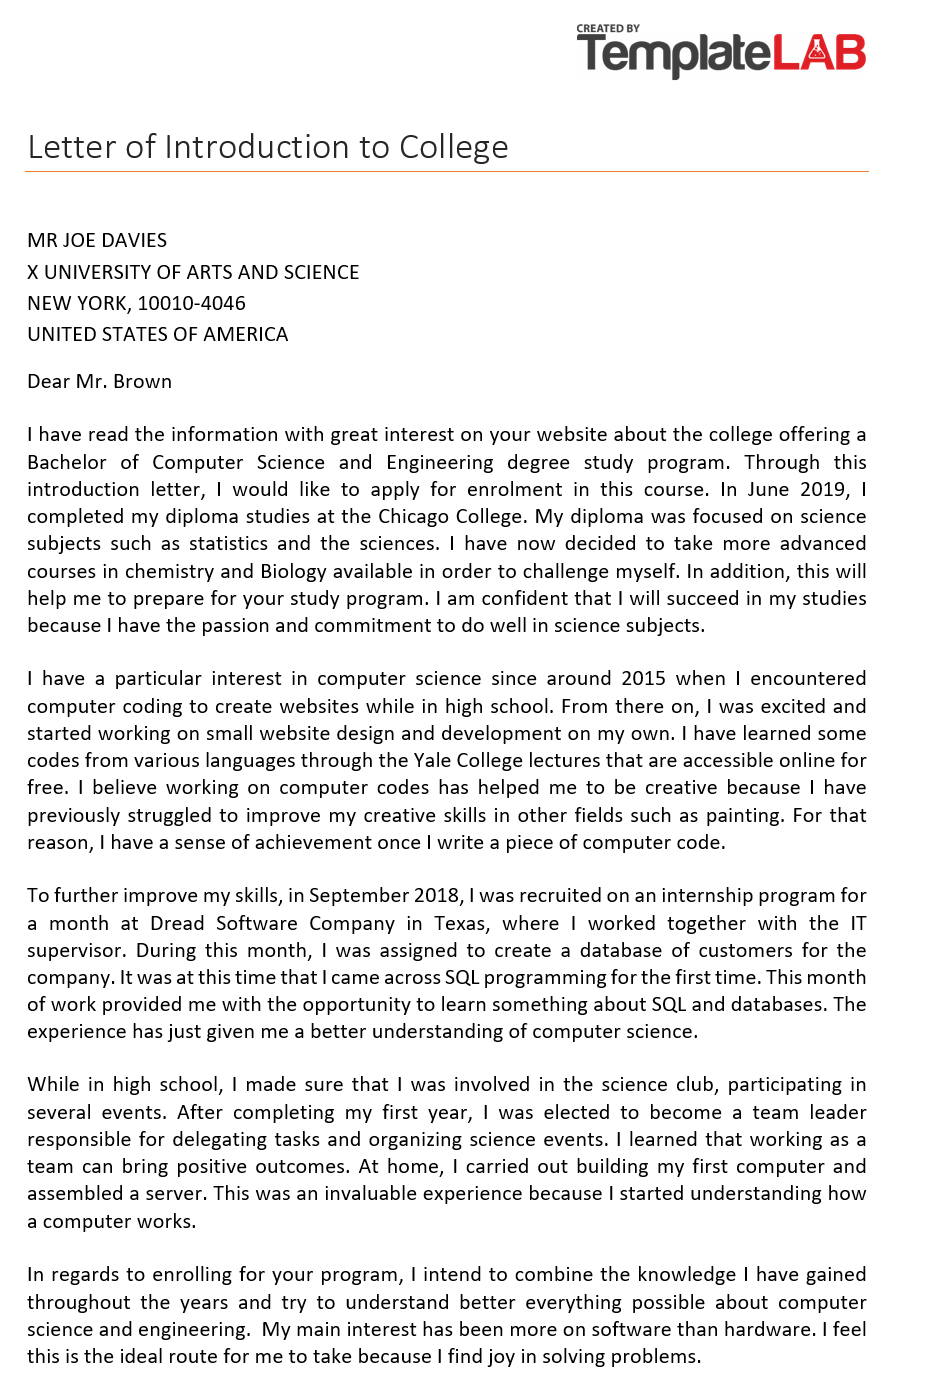 Free Letter of Introduction to College 2